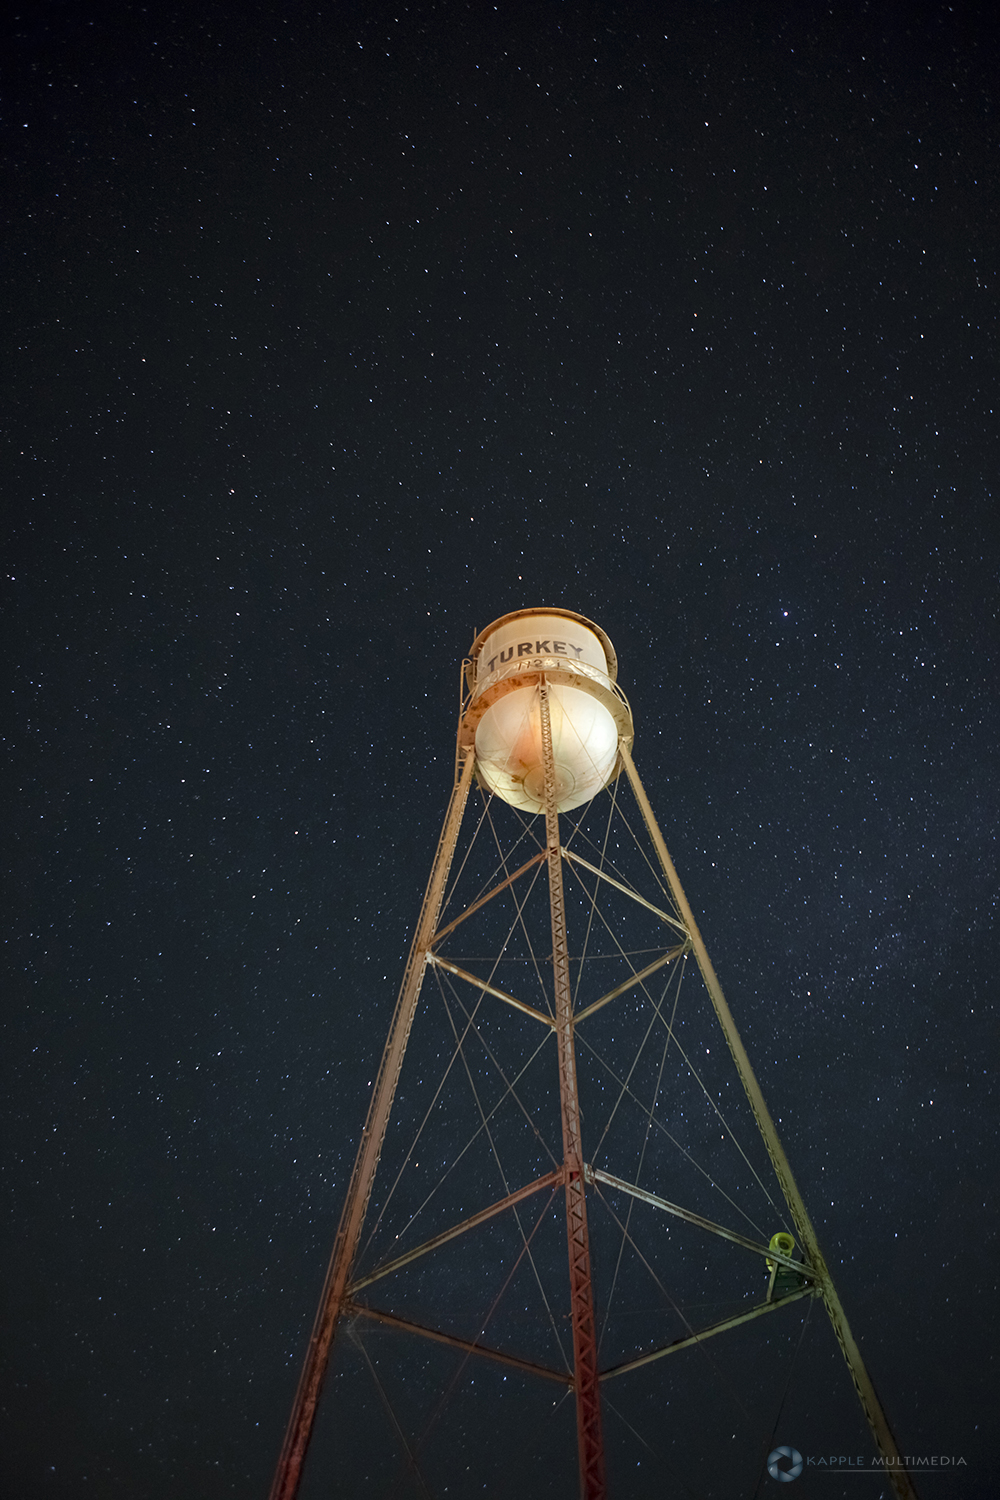 Old retro water tower, west Texas, USA